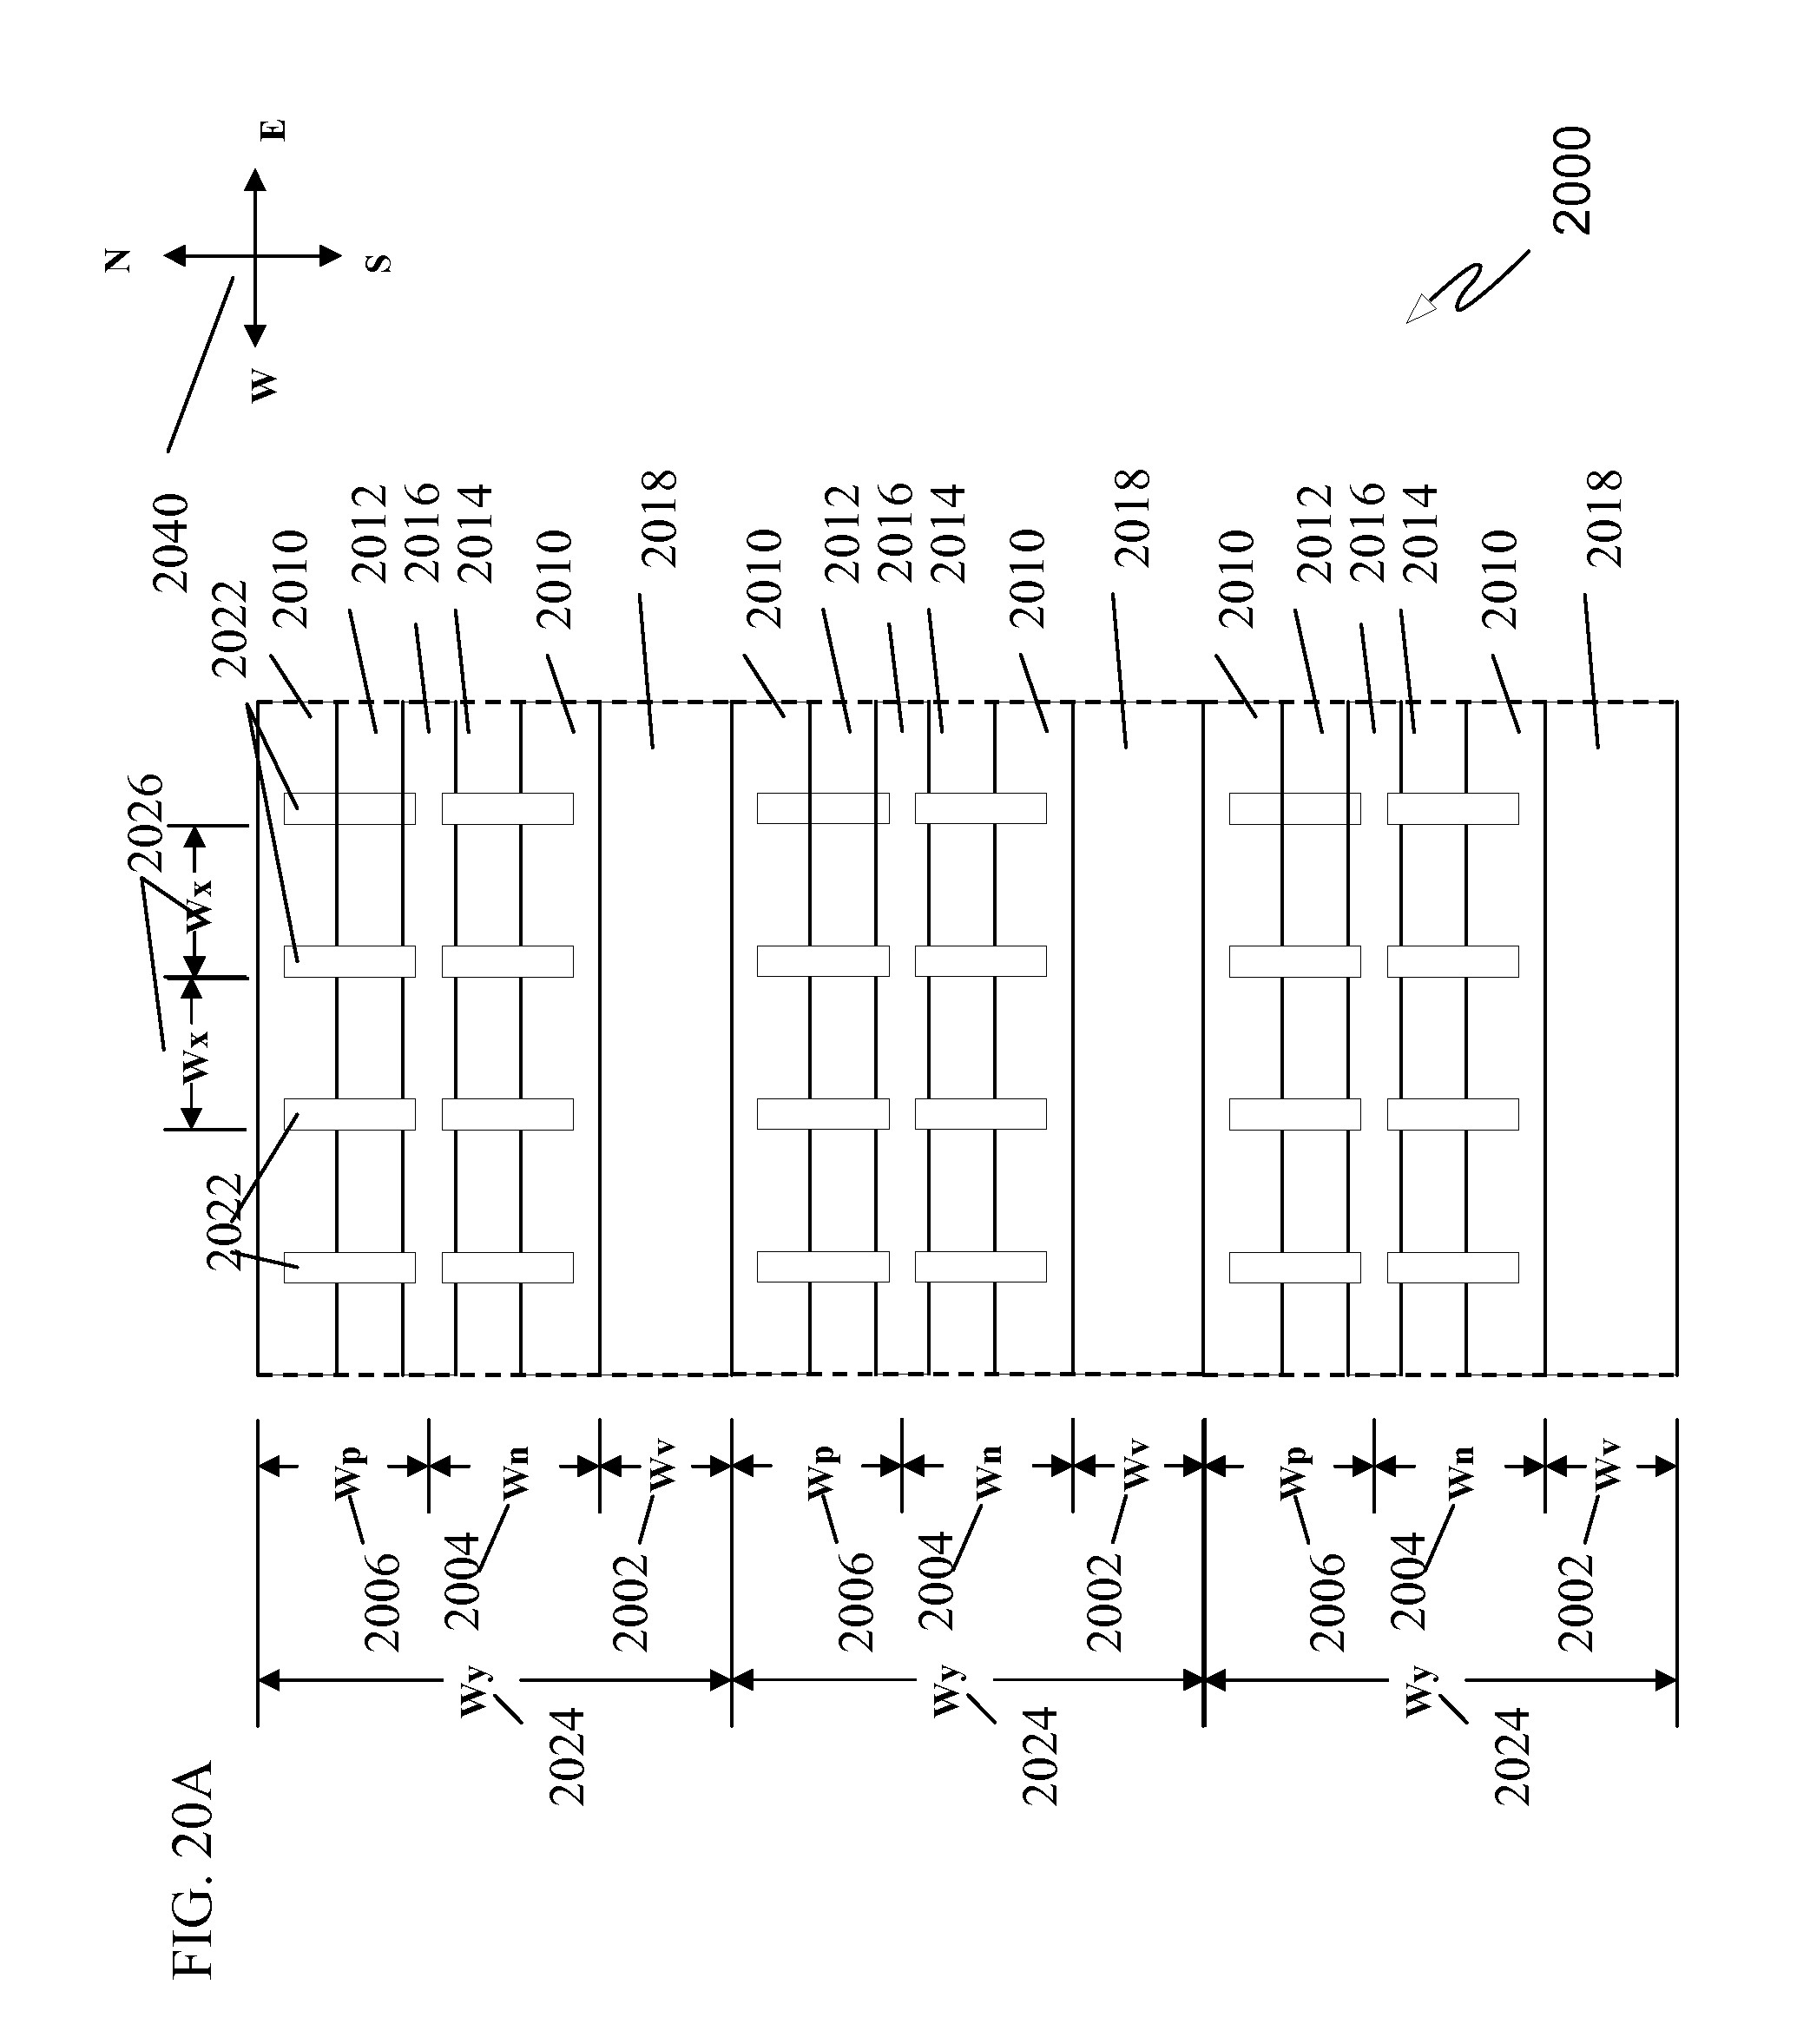 Patent Us 8846463 B1 Partially Due To My Constraint Reuse As Much Of The Factory Wiring Images